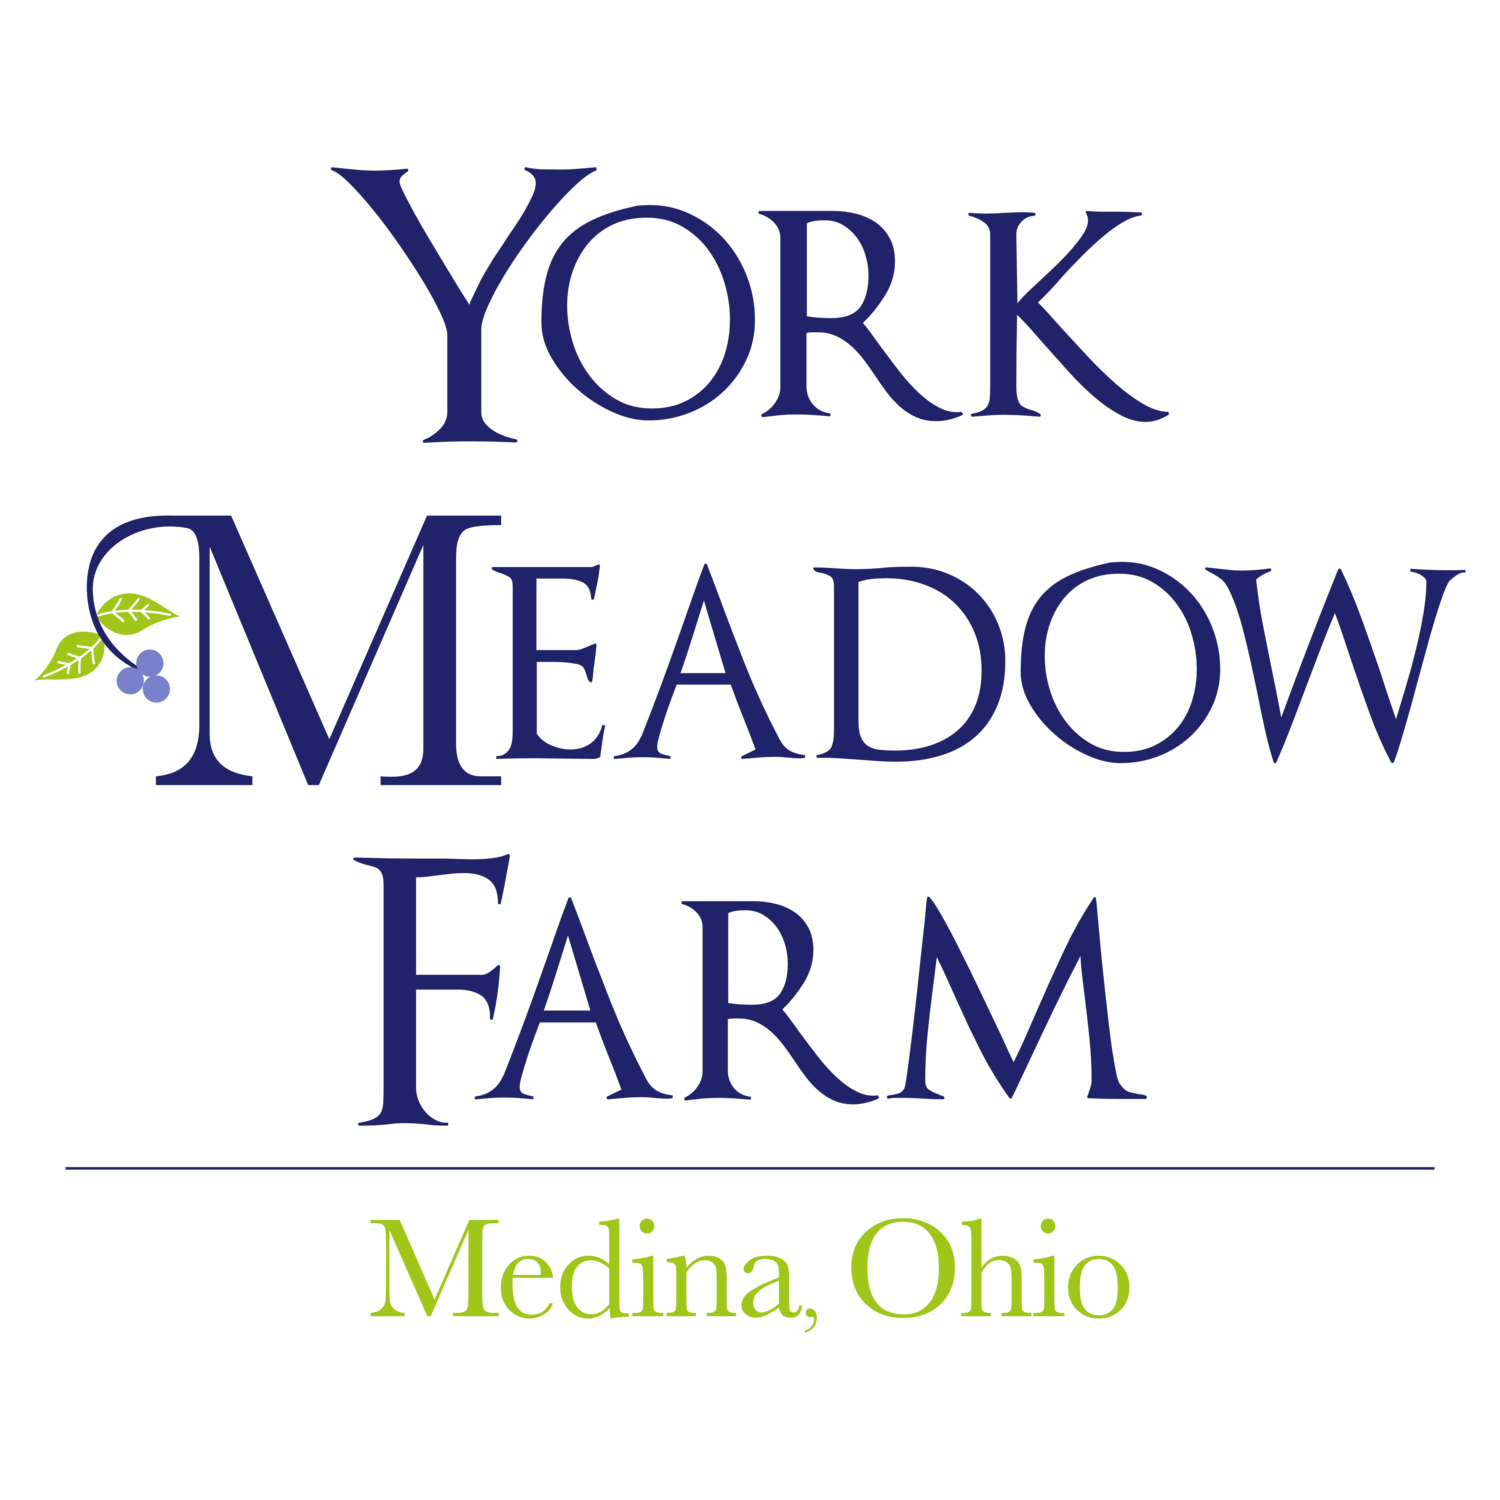 York Meadow Farm